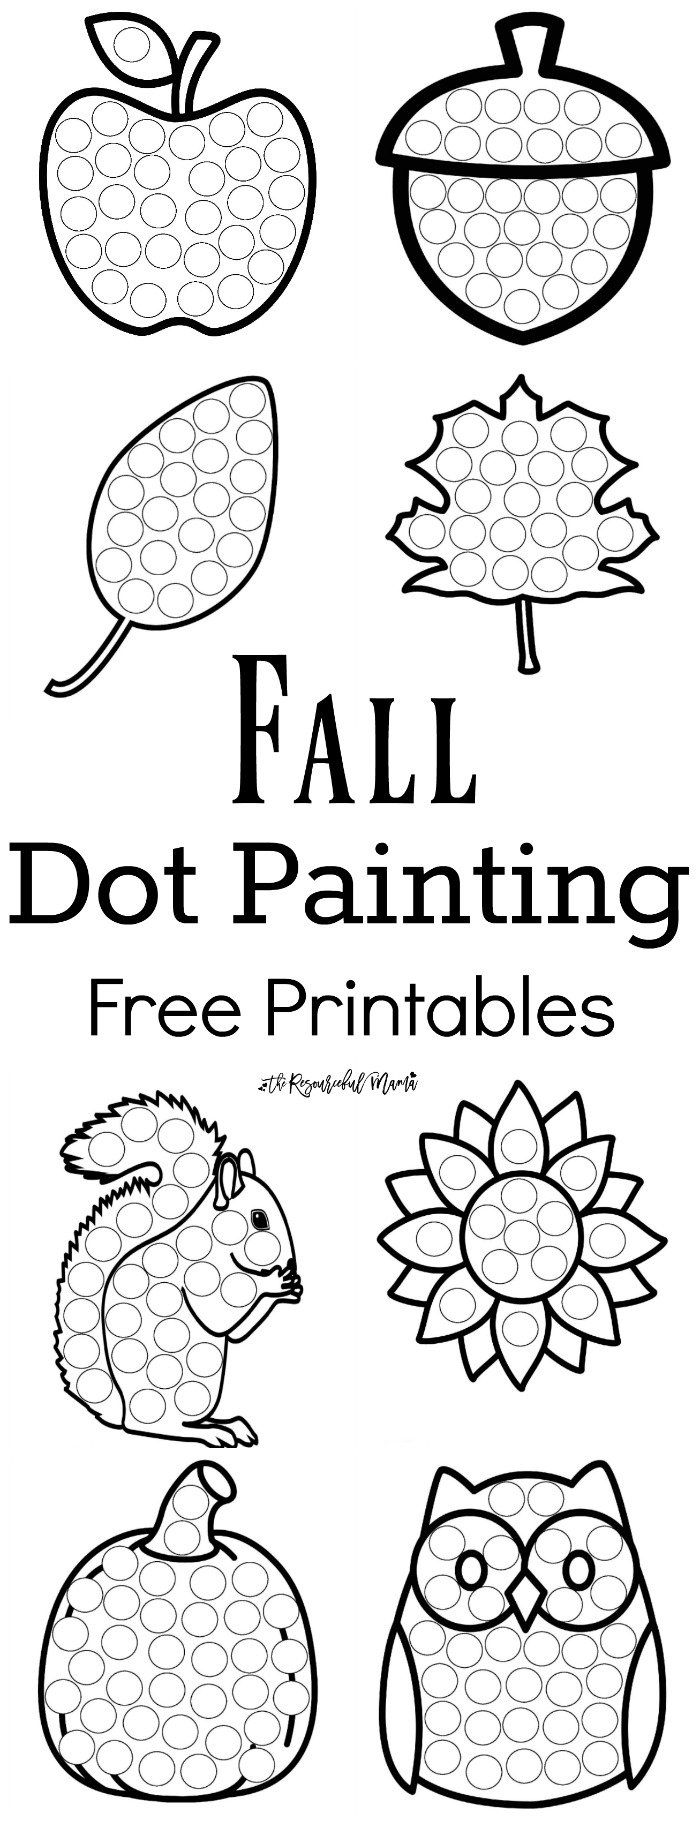 Fall Dot Painting worksheets // Fichas de otoño para pintar con roturadores #fall #autumn #dotadot